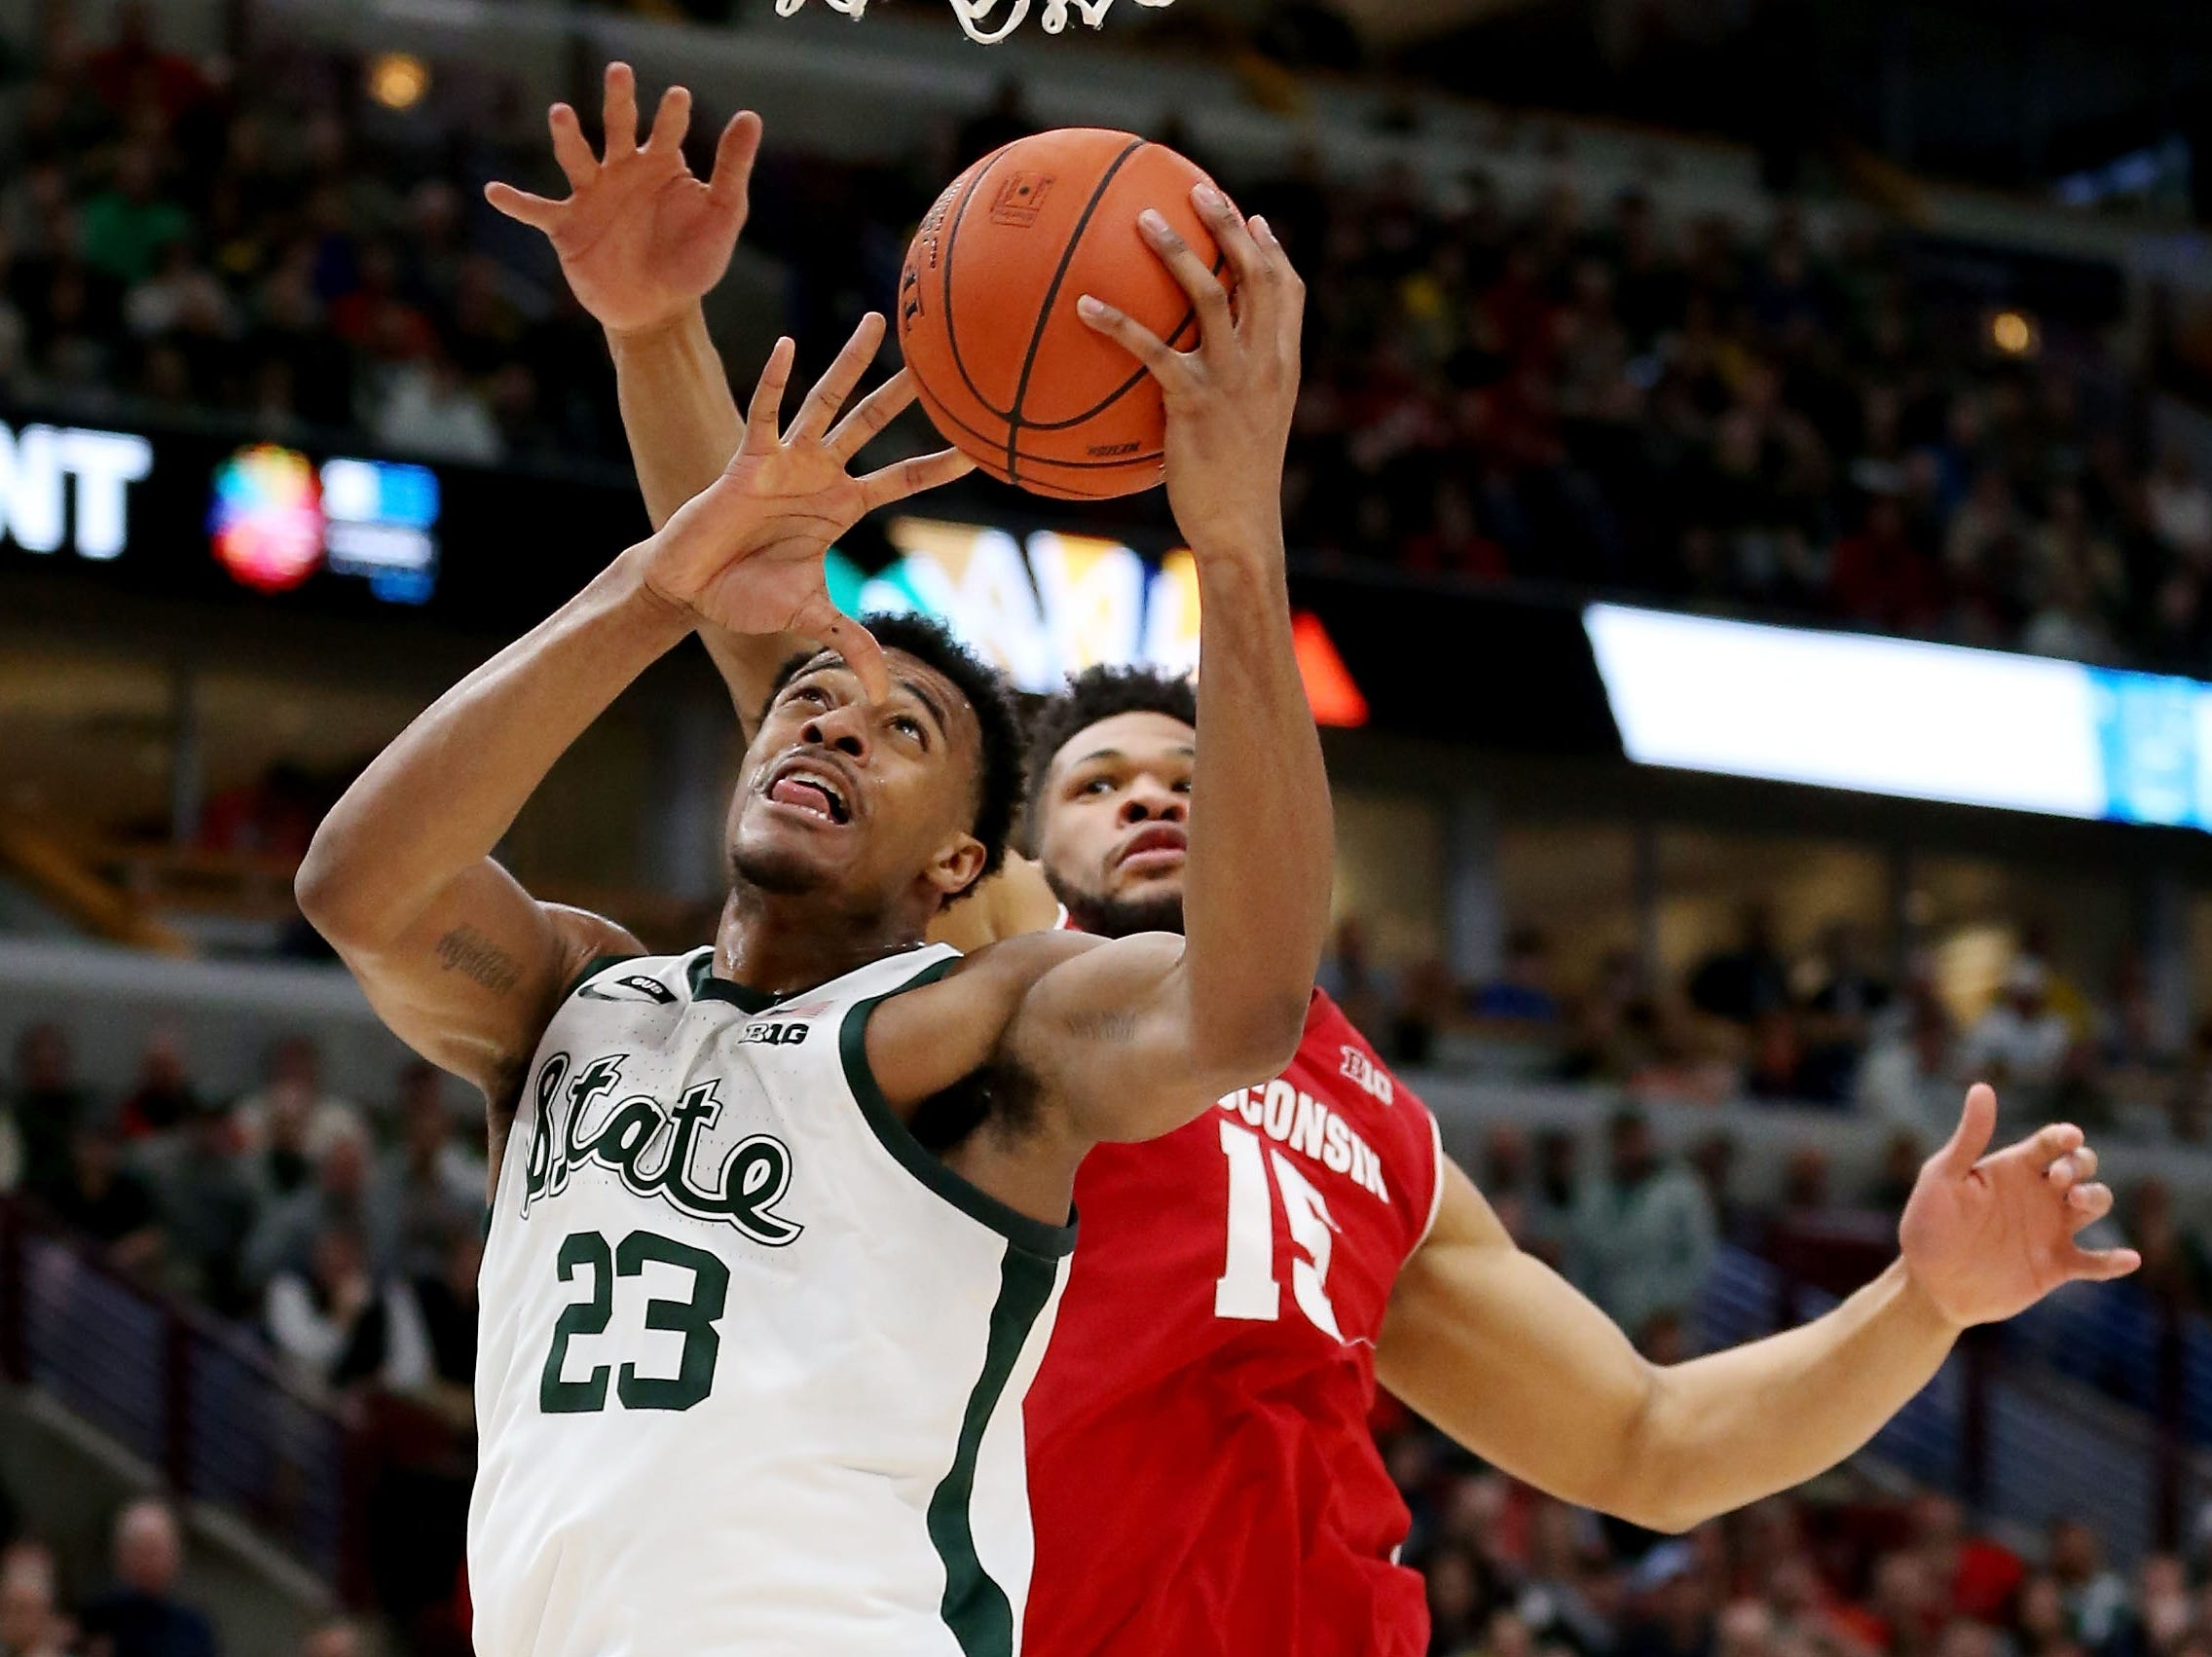 Xavier Tillman #23 of the Michigan State Spartans attempts a shot while being guarded by Charles Thomas IV #15 of the Wisconsin Badgers in the first half during the semifinals of the Big Ten Basketball Tournament at the United Center on March 16, 2019 in Chicago, Illinois.